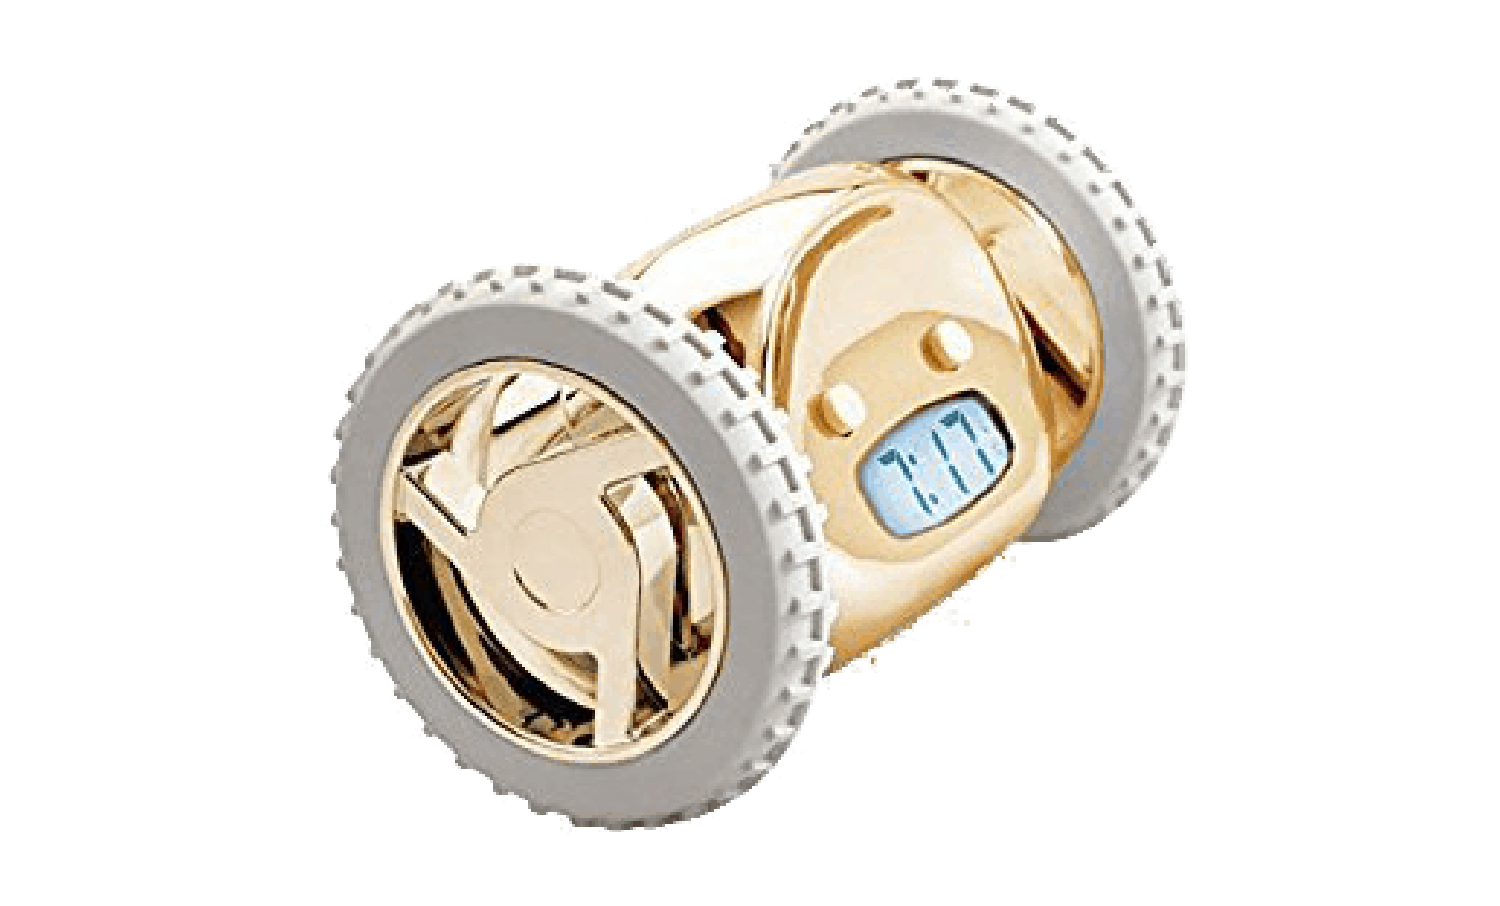 A golden and white alarm clock with wheels